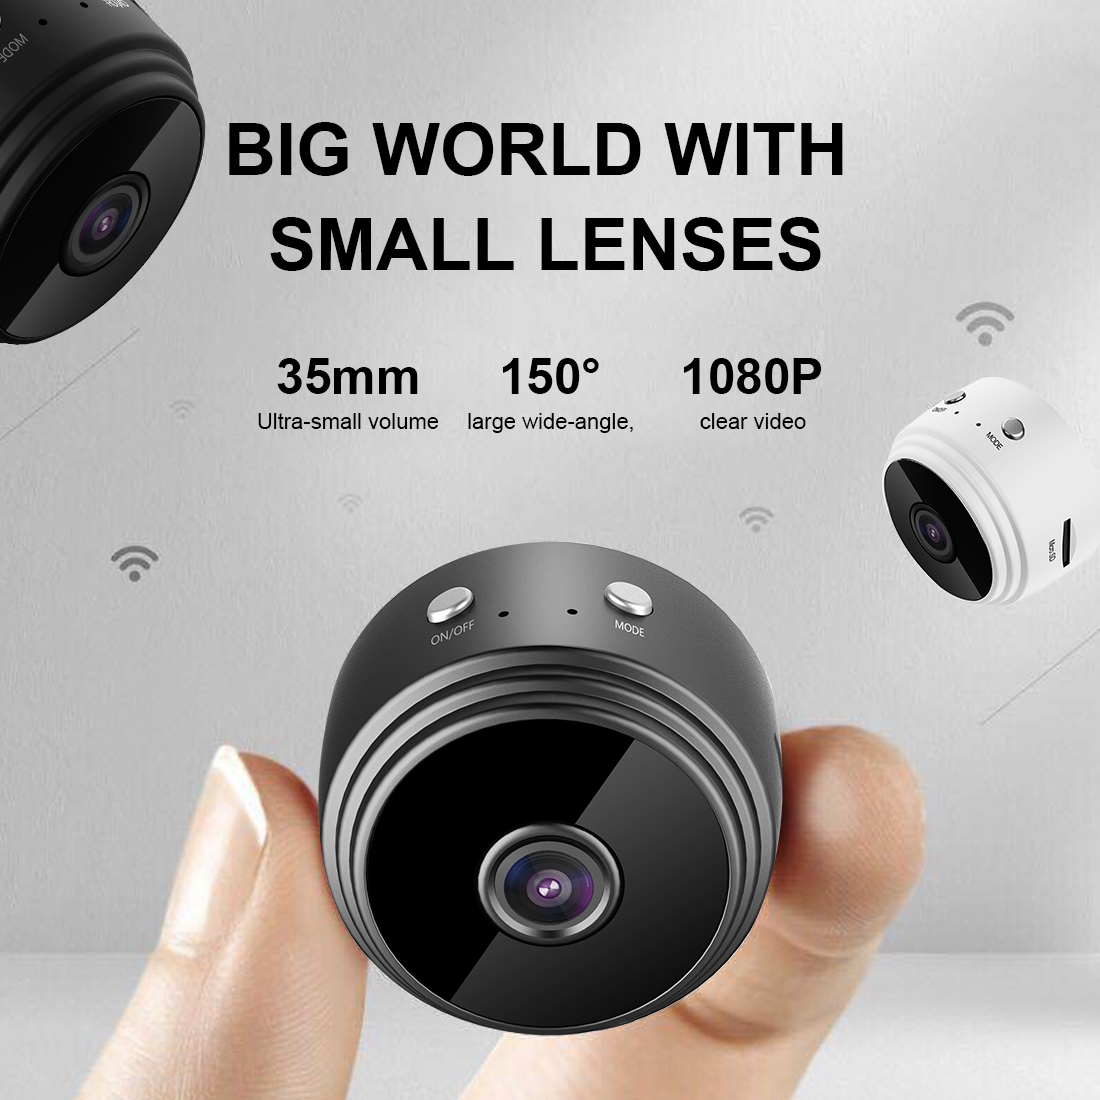 1080P Mini Wireless Camera A9 Wifi Camera Home Security Surveillance Camera Motion Detection IR Night Vision App Remote Monitor